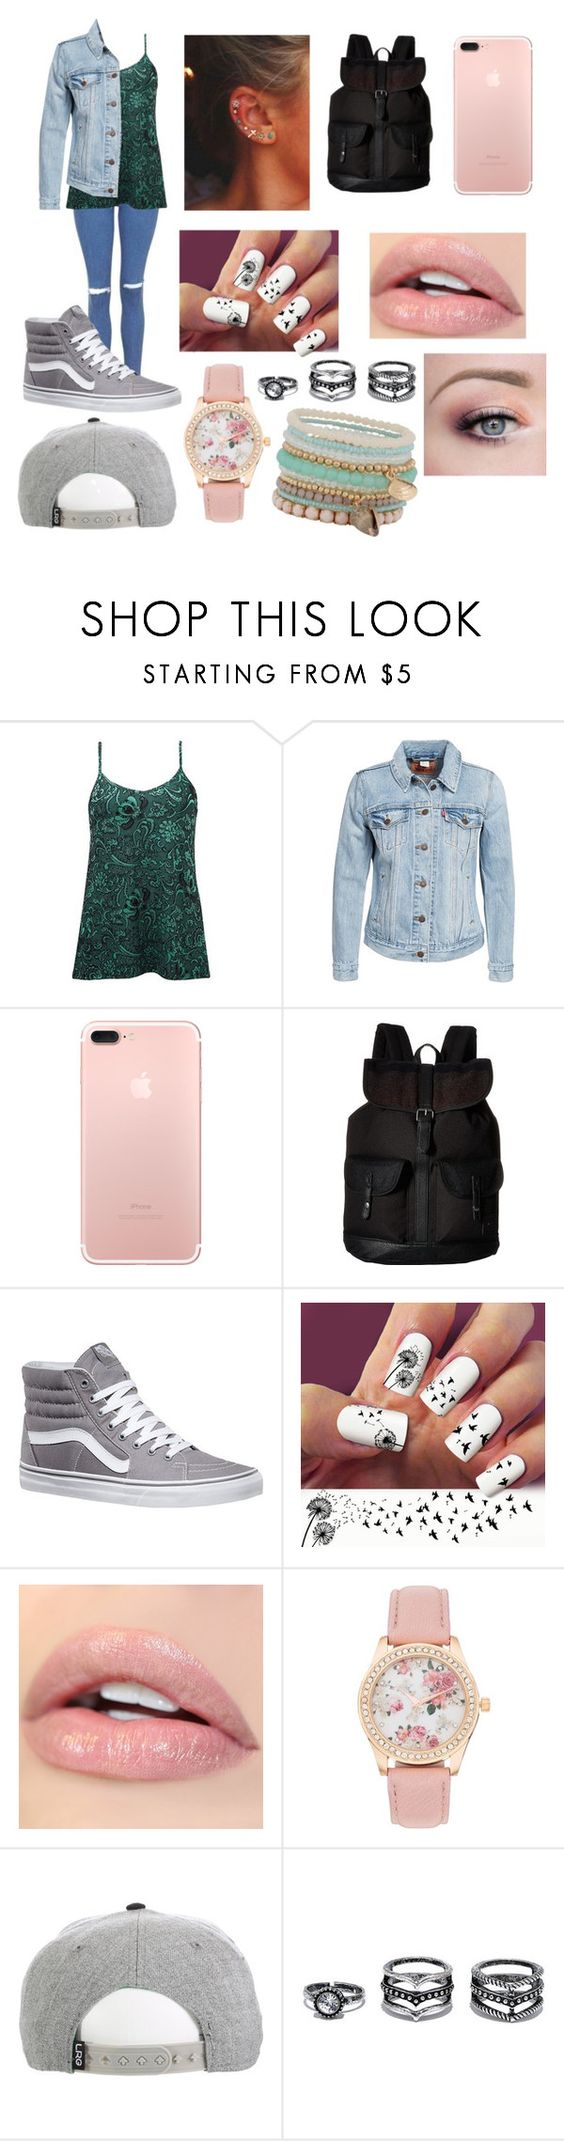 """Lauren's Outfit"" by emilypaul0400 on Polyvore featuring BKE, Levi's, Vans, LULUS and ALDO"